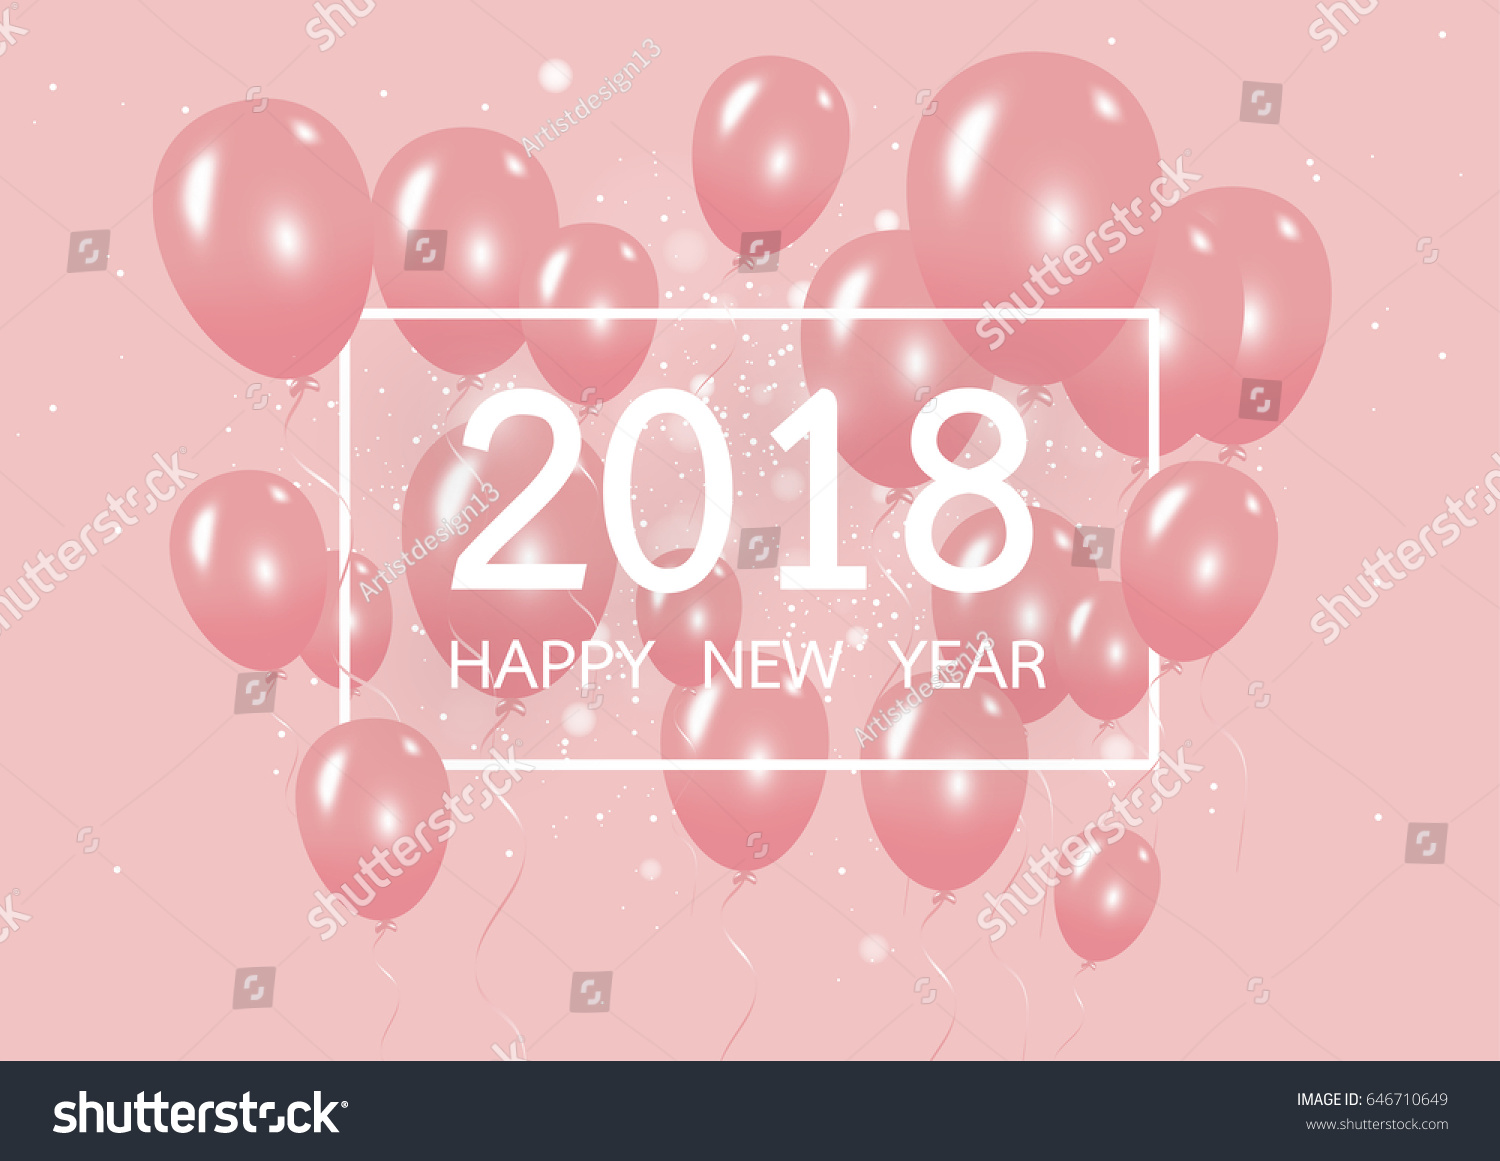 happy new year 2018 with creative pink balloon concept on pastel pink background for copy space